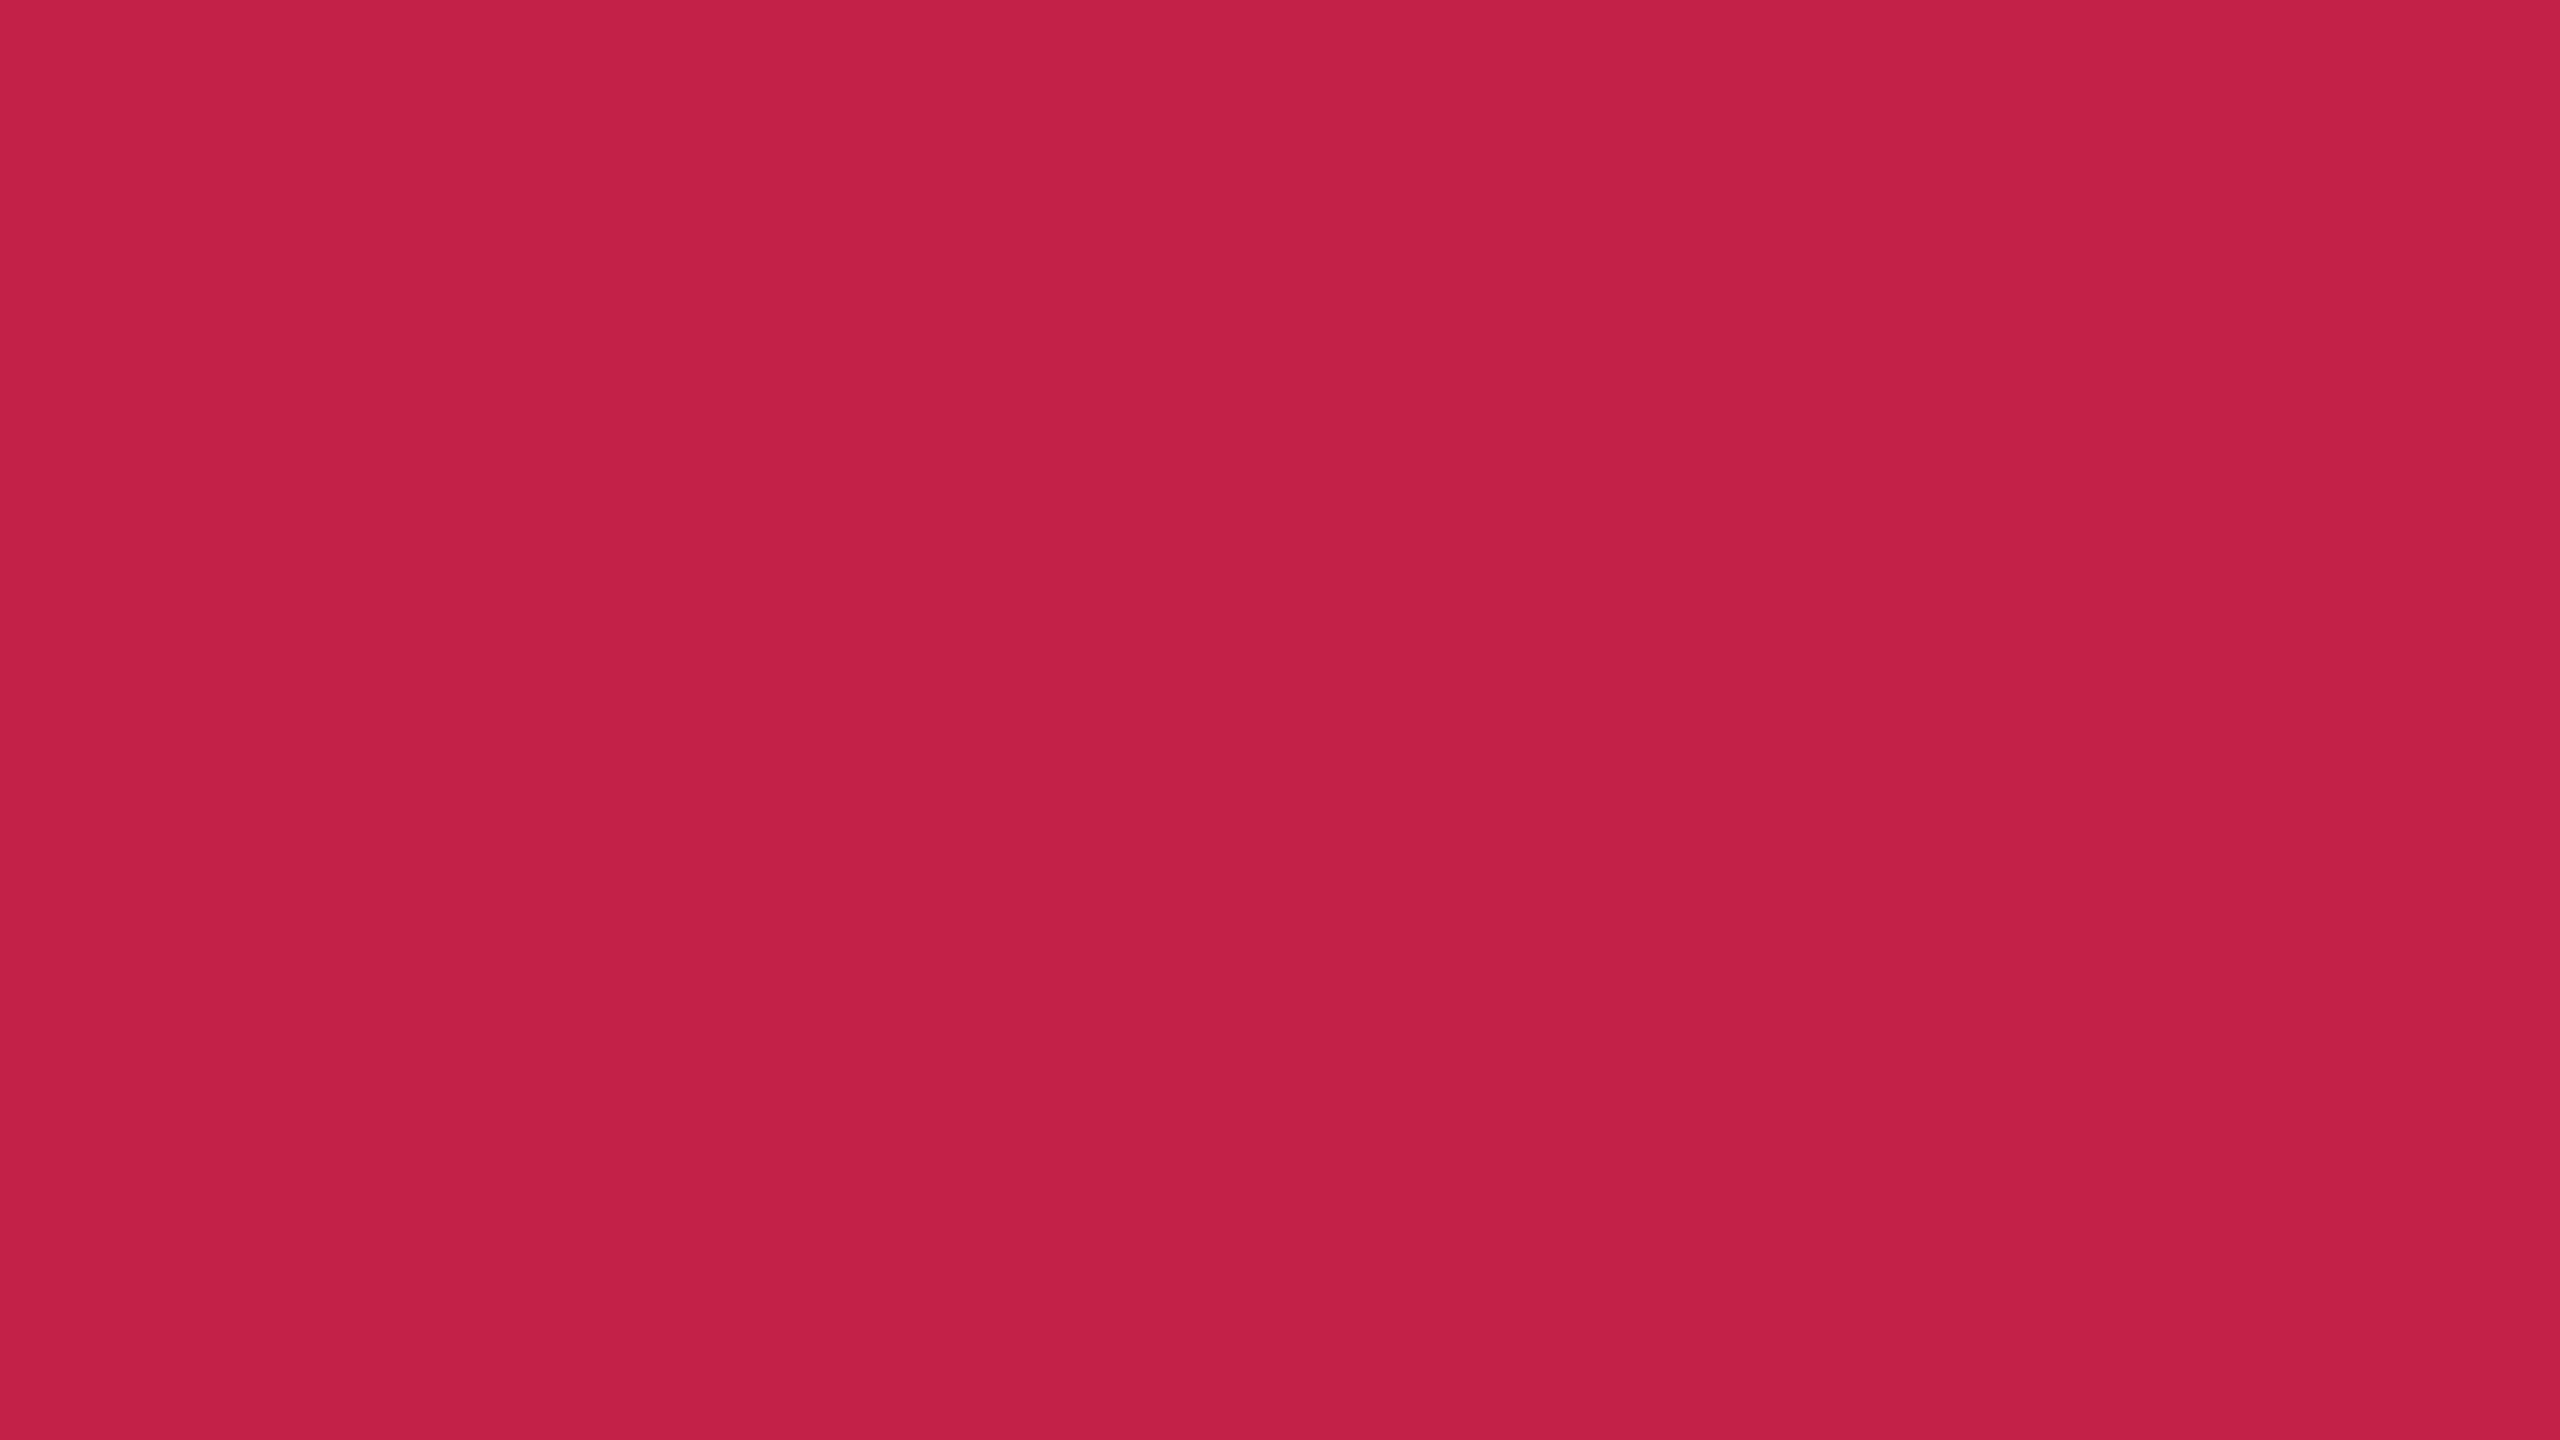 2560x1440 Bright Maroon Solid Color Background